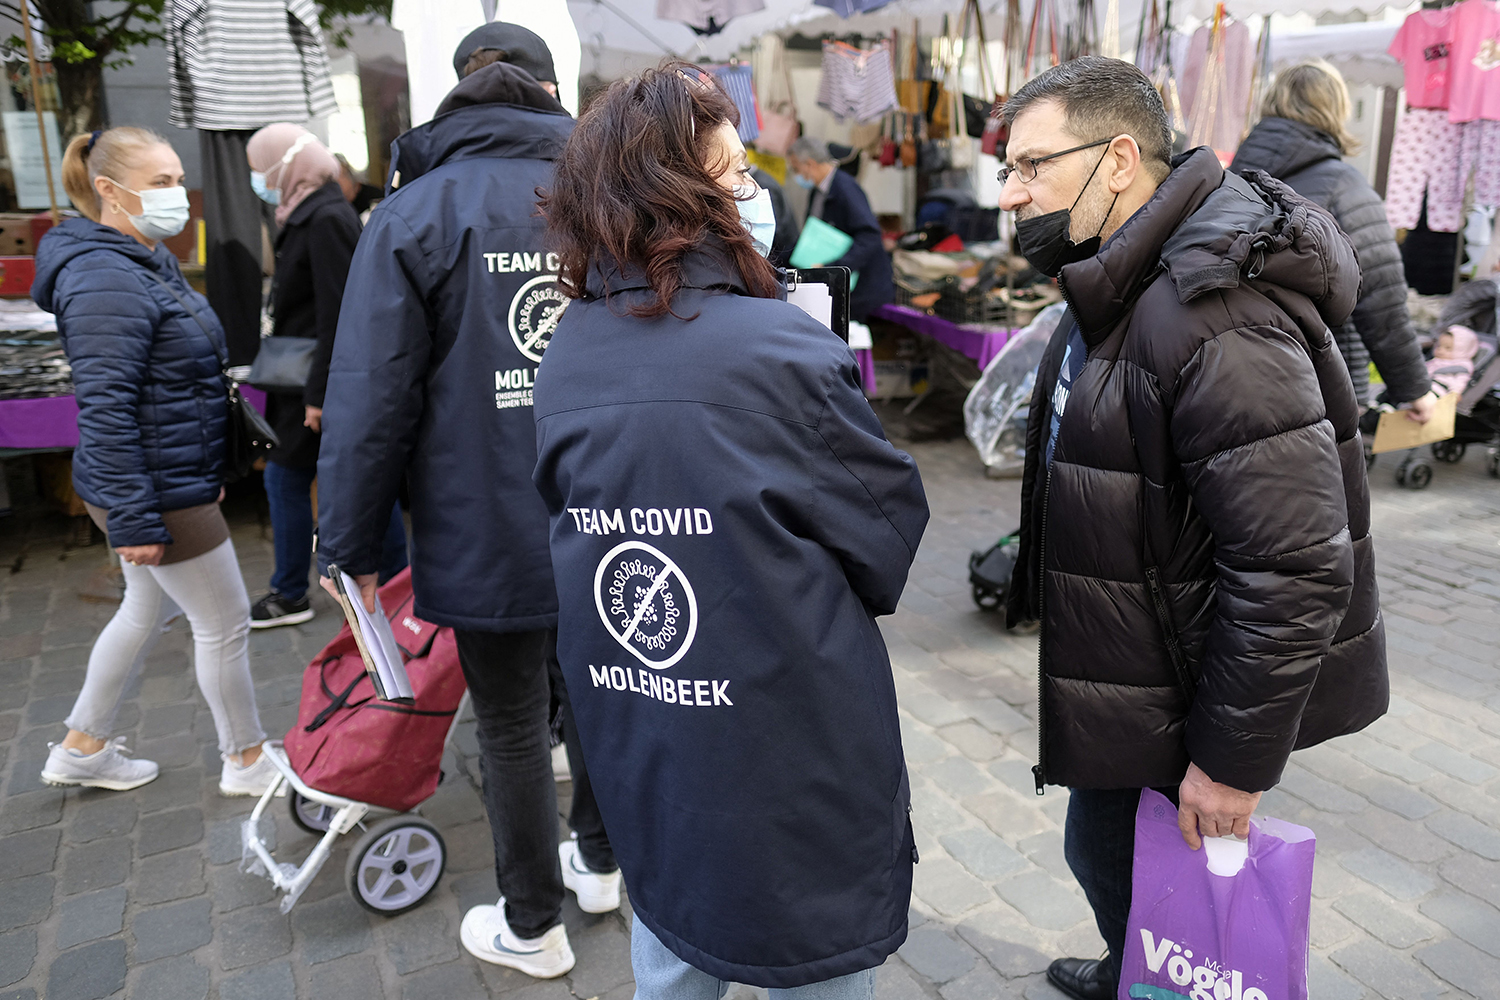 Members of a COVID-19 team talk to people in Brussels